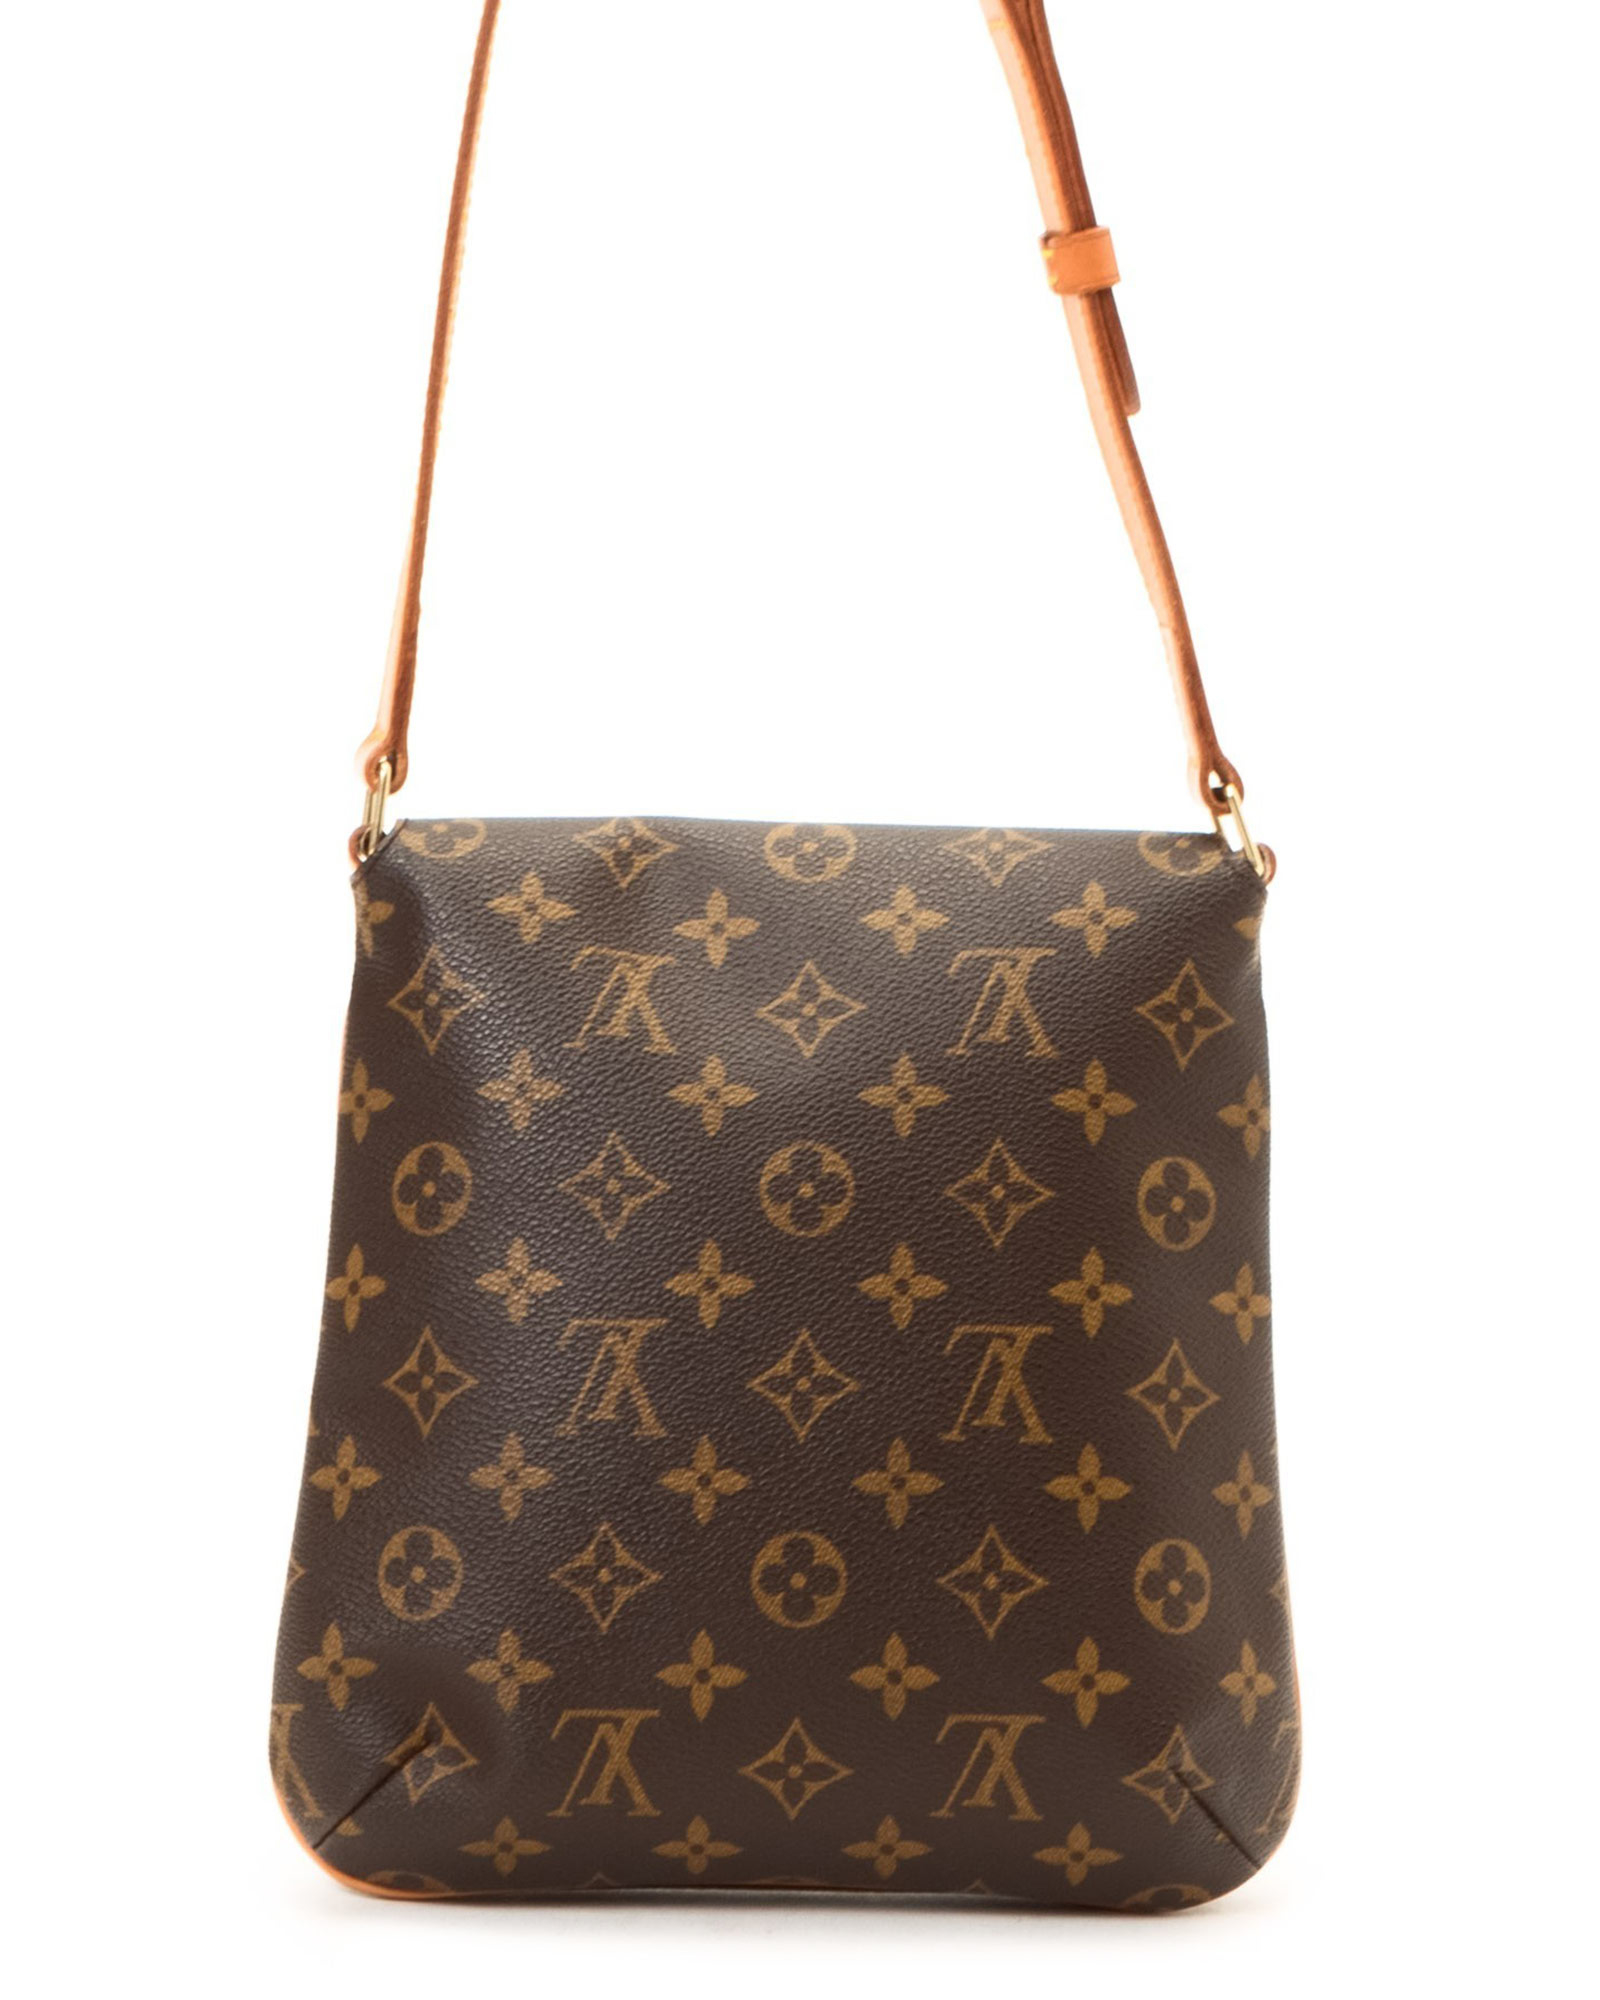 louis vuitton vintage shoulder bag burke leather totes. Black Bedroom Furniture Sets. Home Design Ideas